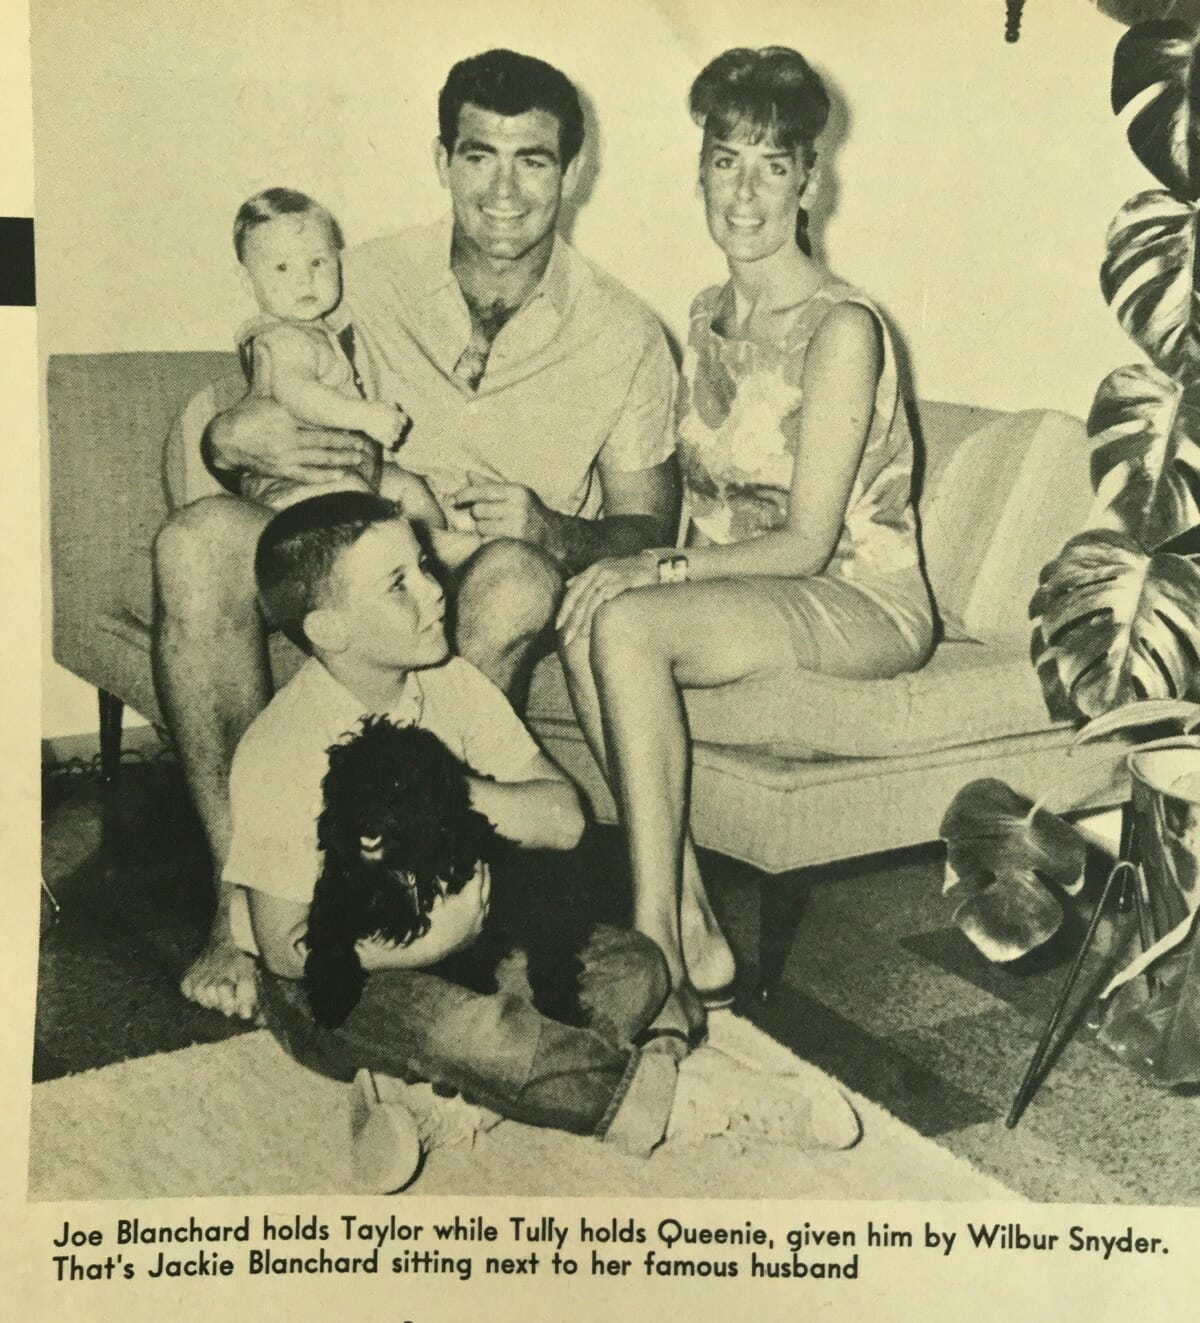 Joe Blanchard with his family, including a young Tully Blanchard. (Photo credit: @ostpies on Twitter)